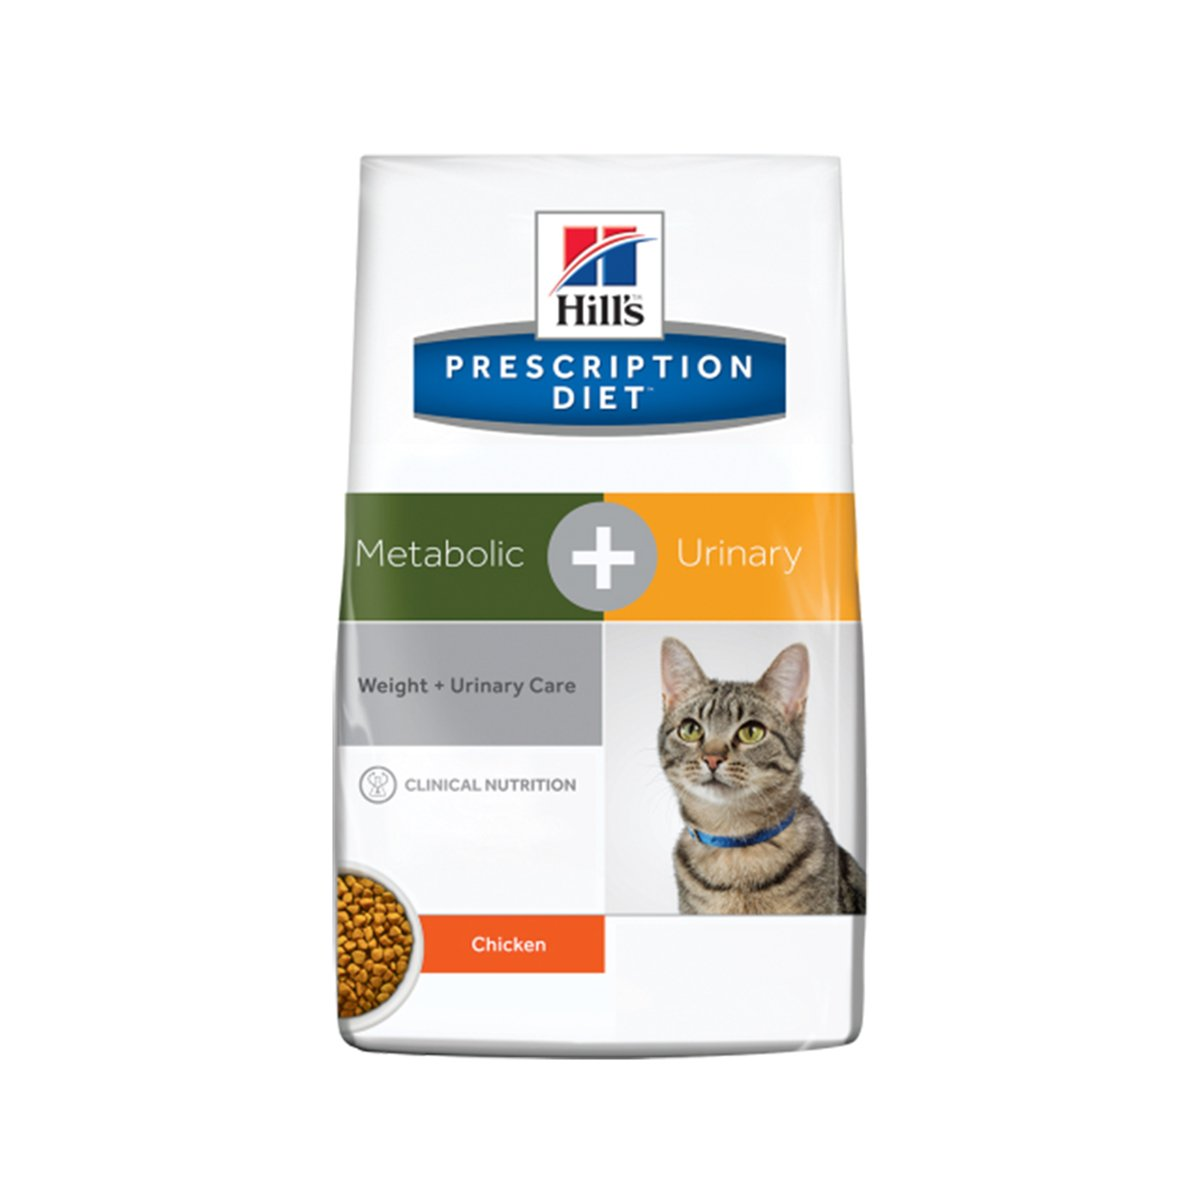 Hill`s Alimento Dietético para Gato Metabolic Plus Urinary - 1,5 kg: Amazon.es: Productos para mascotas